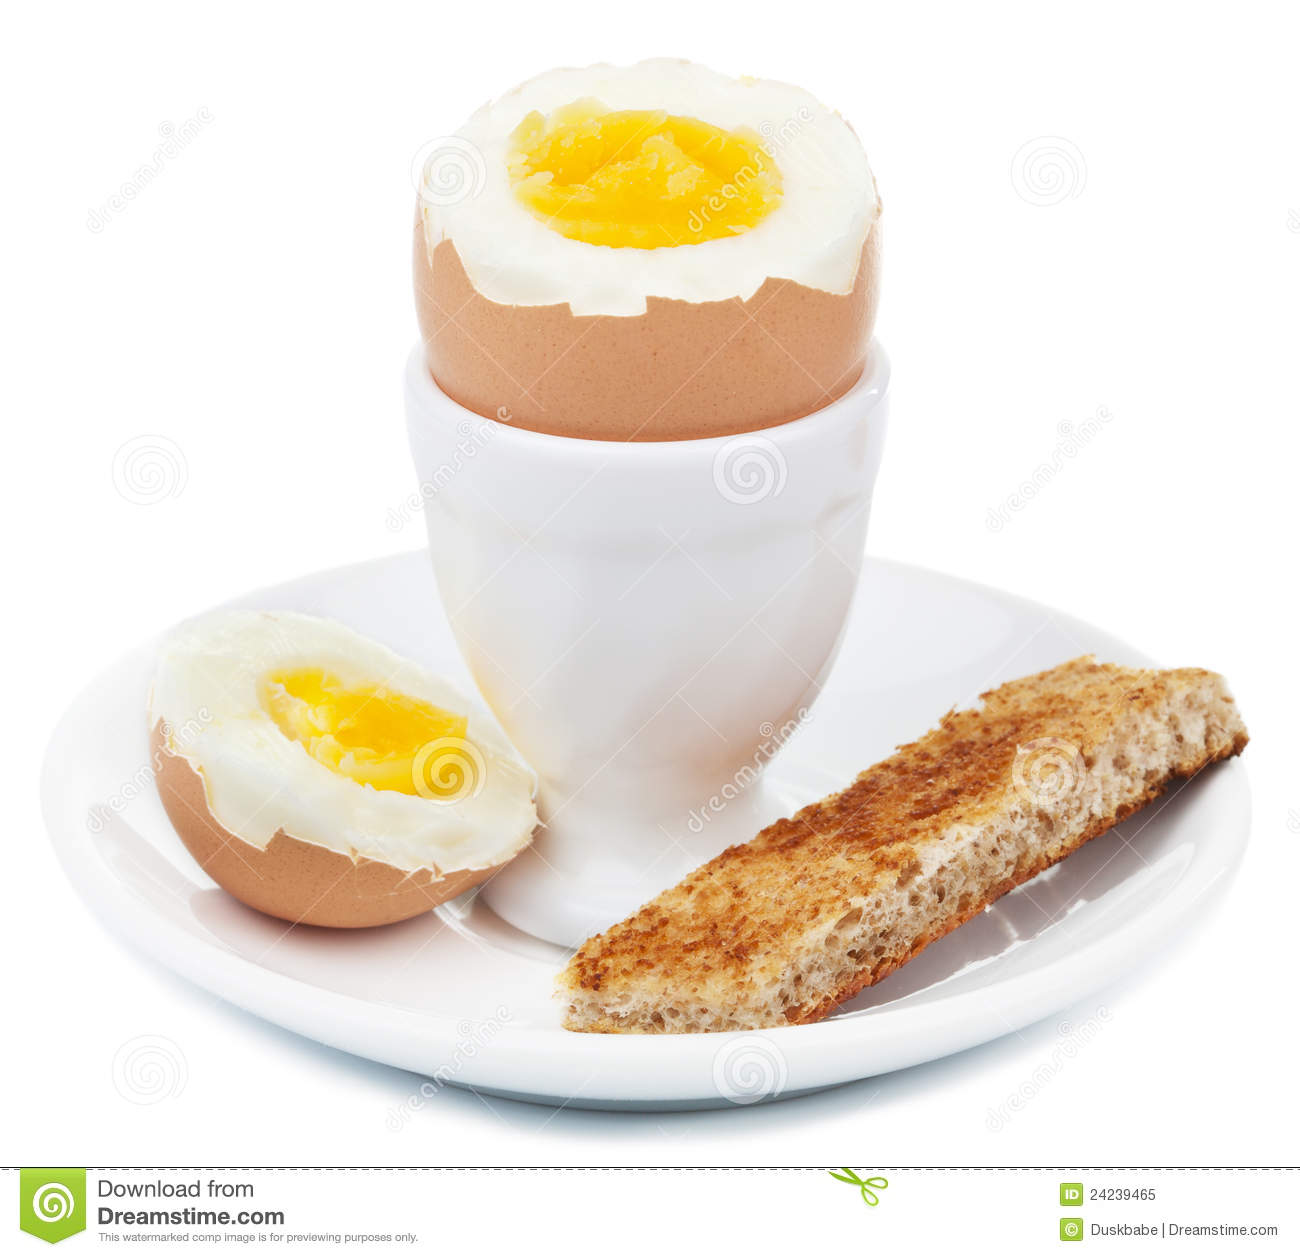 Boiled egg in eggcup isolated